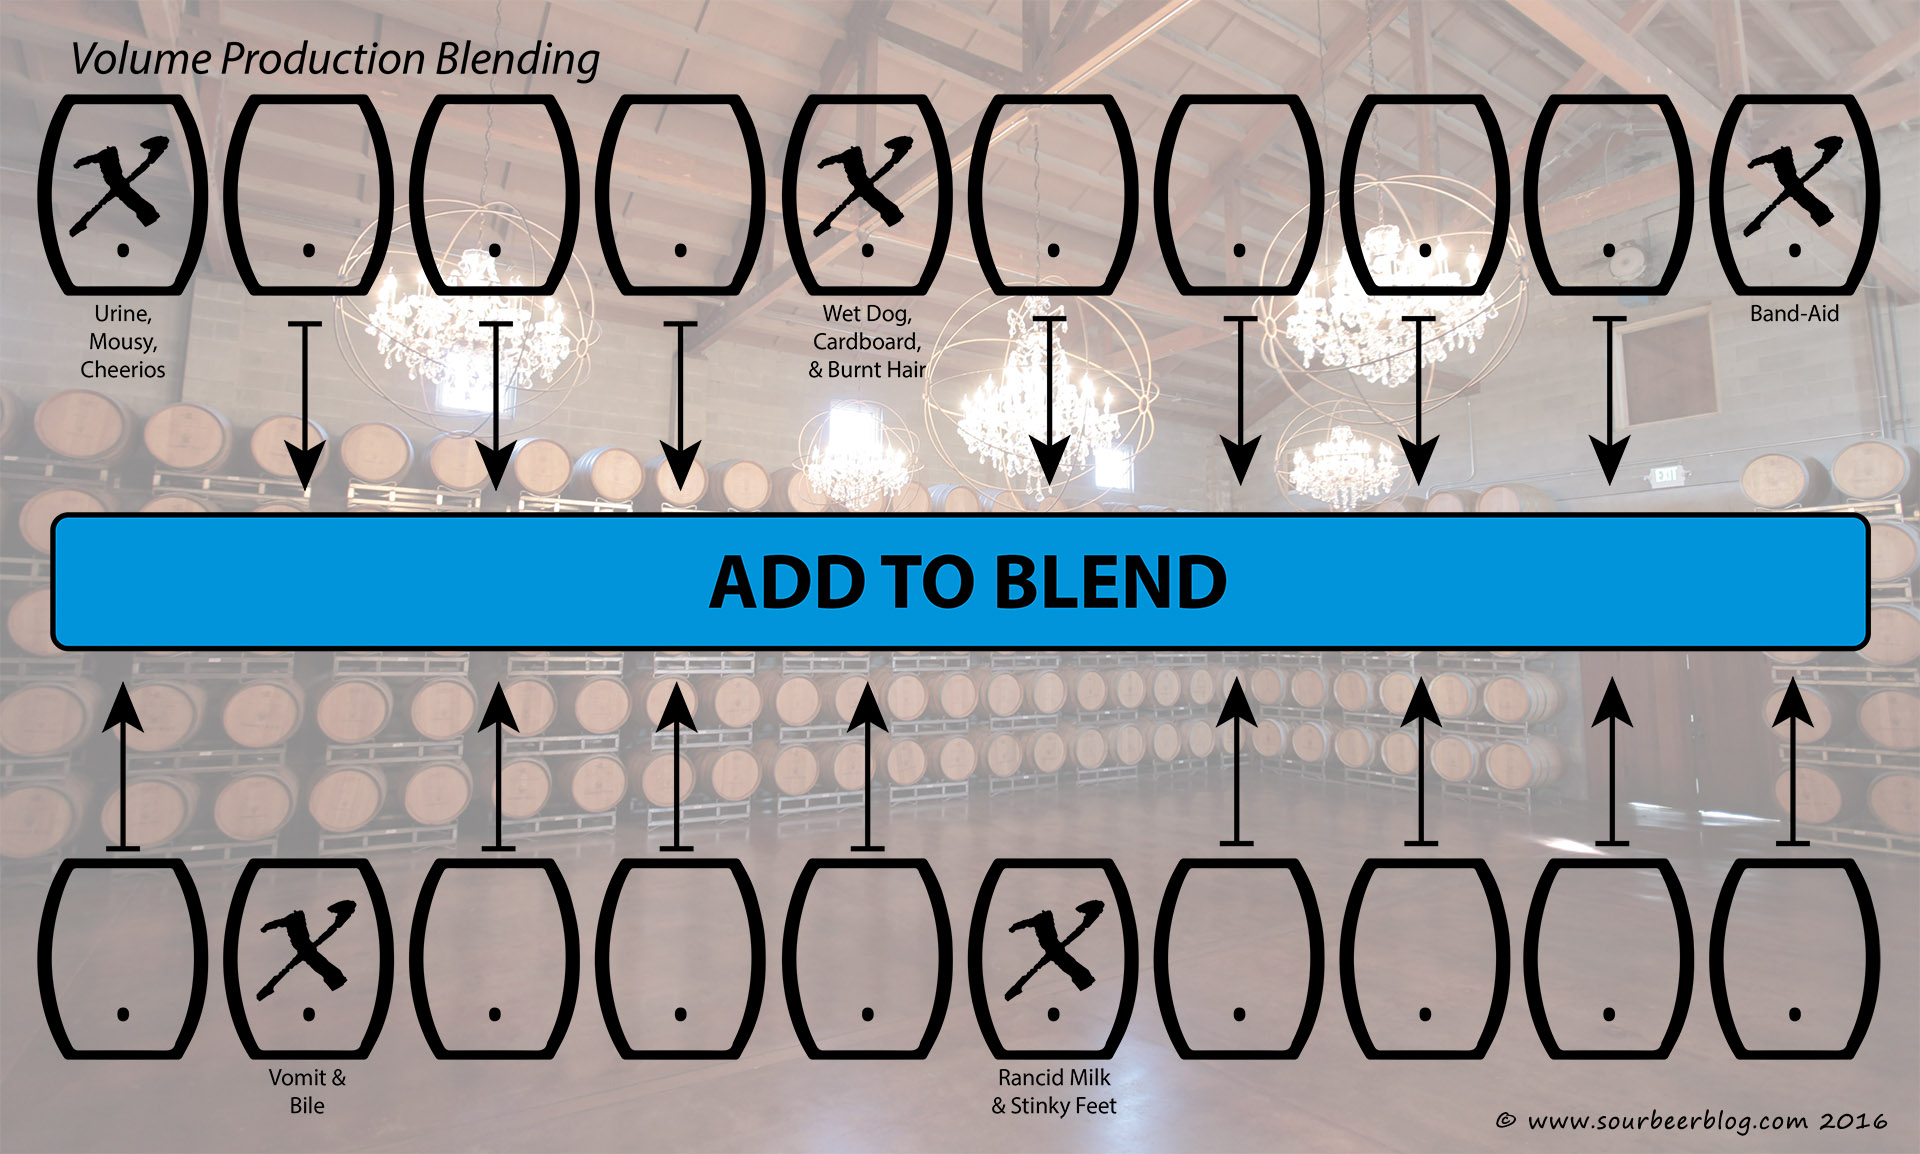 Production Blending